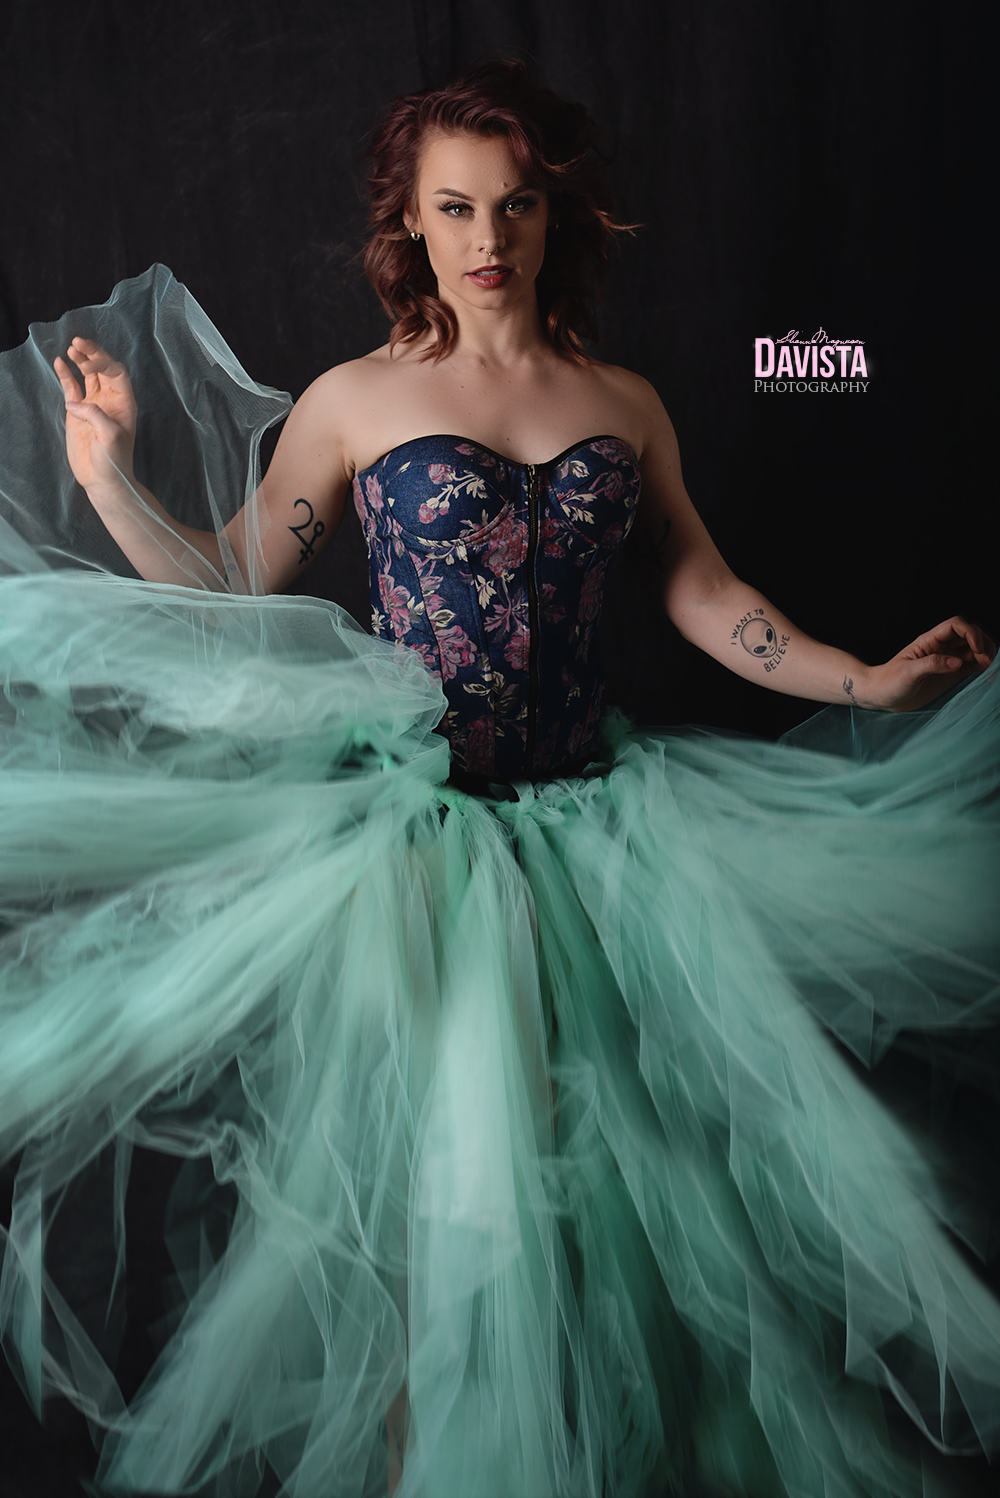 mint tulle skirt homemade glamour photography